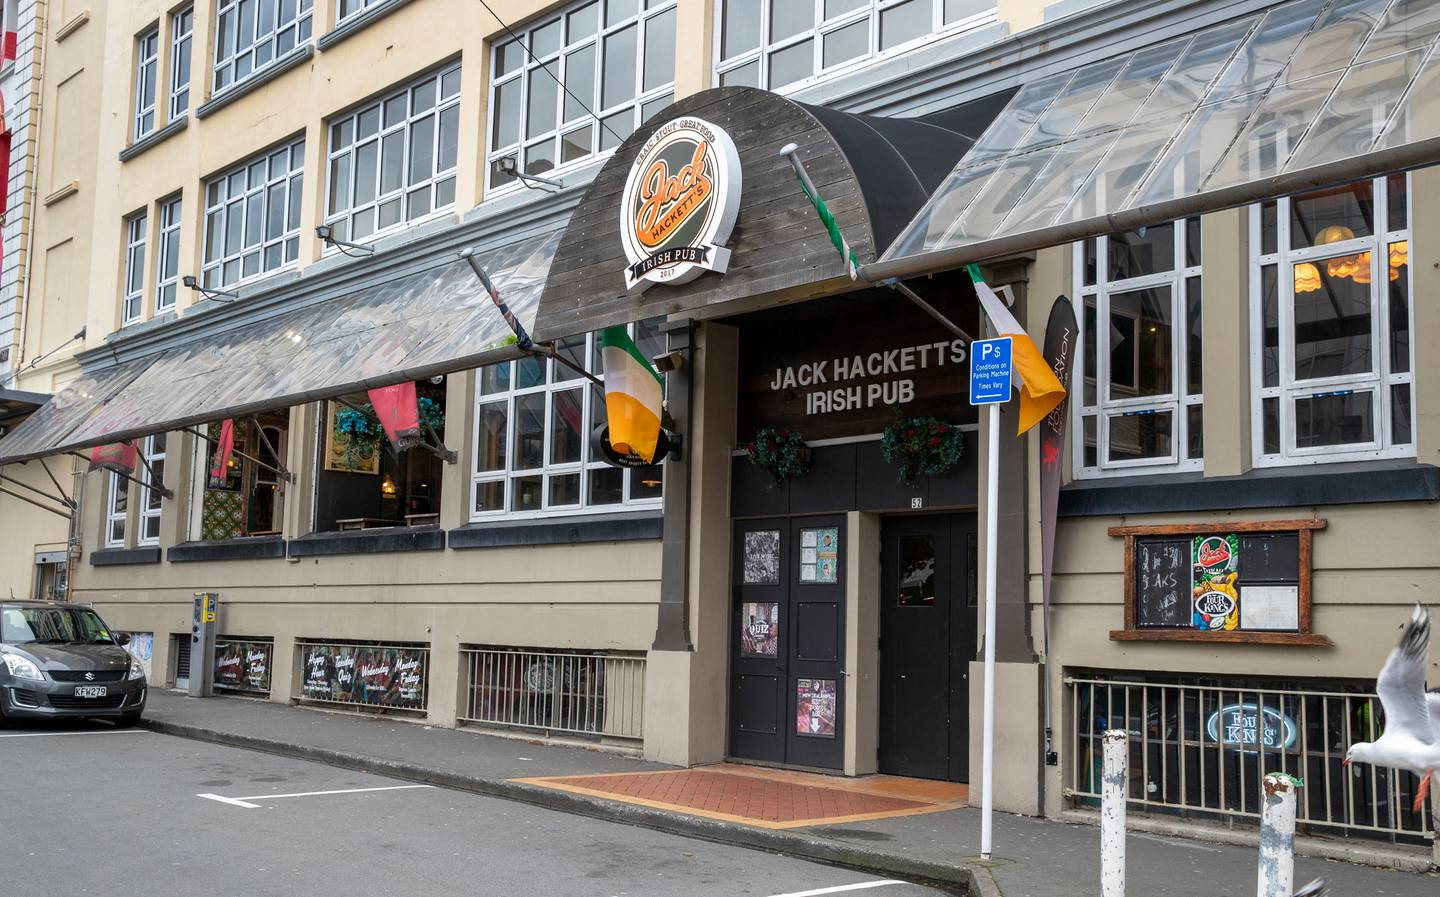 Jack Hackett's Irish Pub in Wellington was open to screen a football game early today. Photo: NZ...